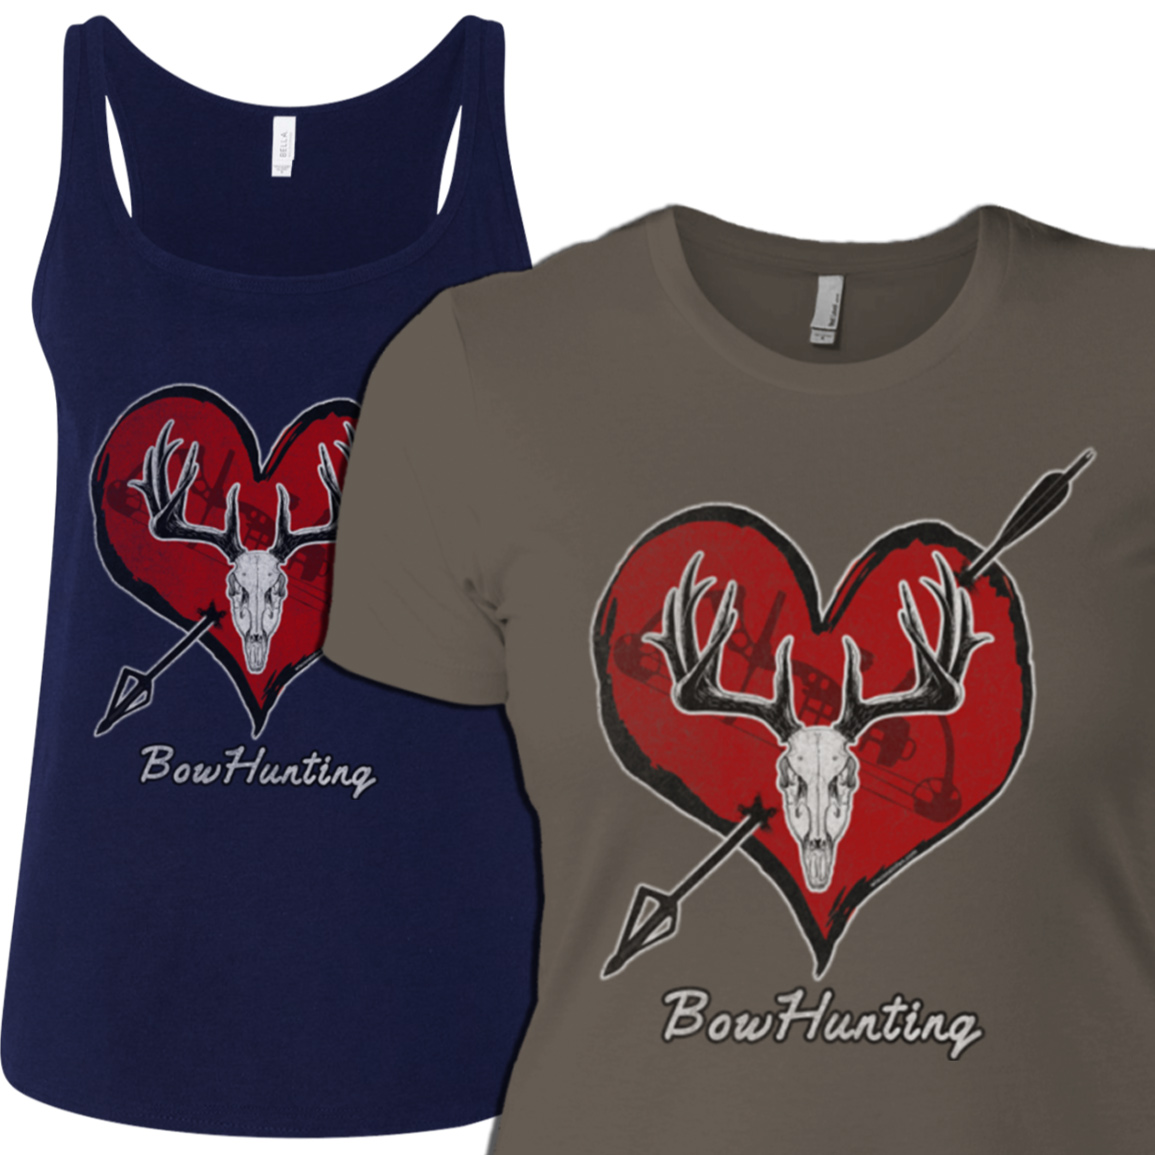 womens-bowhunting-tshirt-design